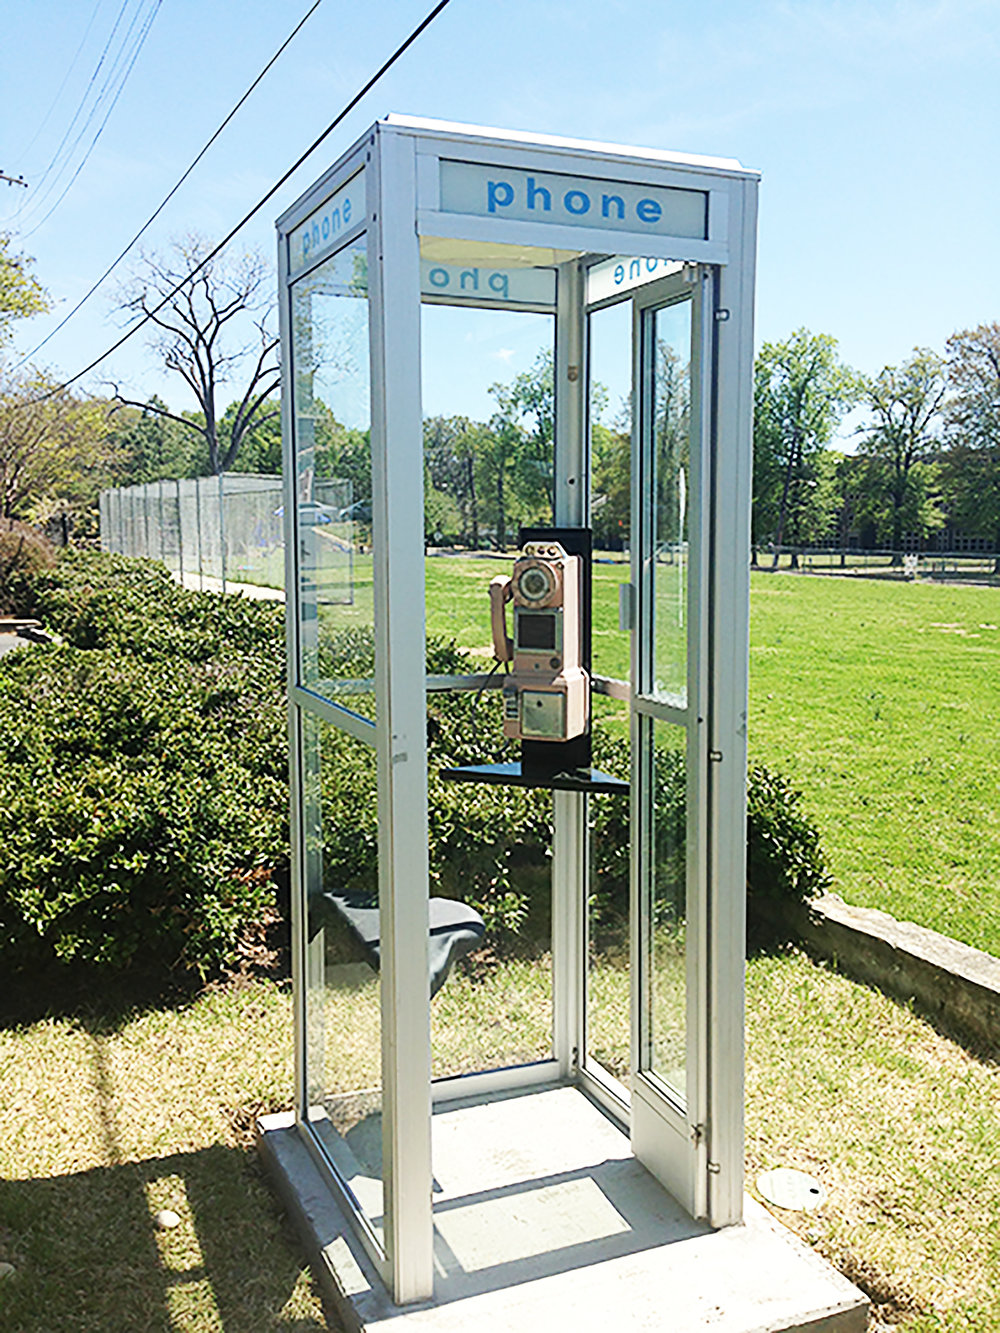 phonebooth-photo1.jpg